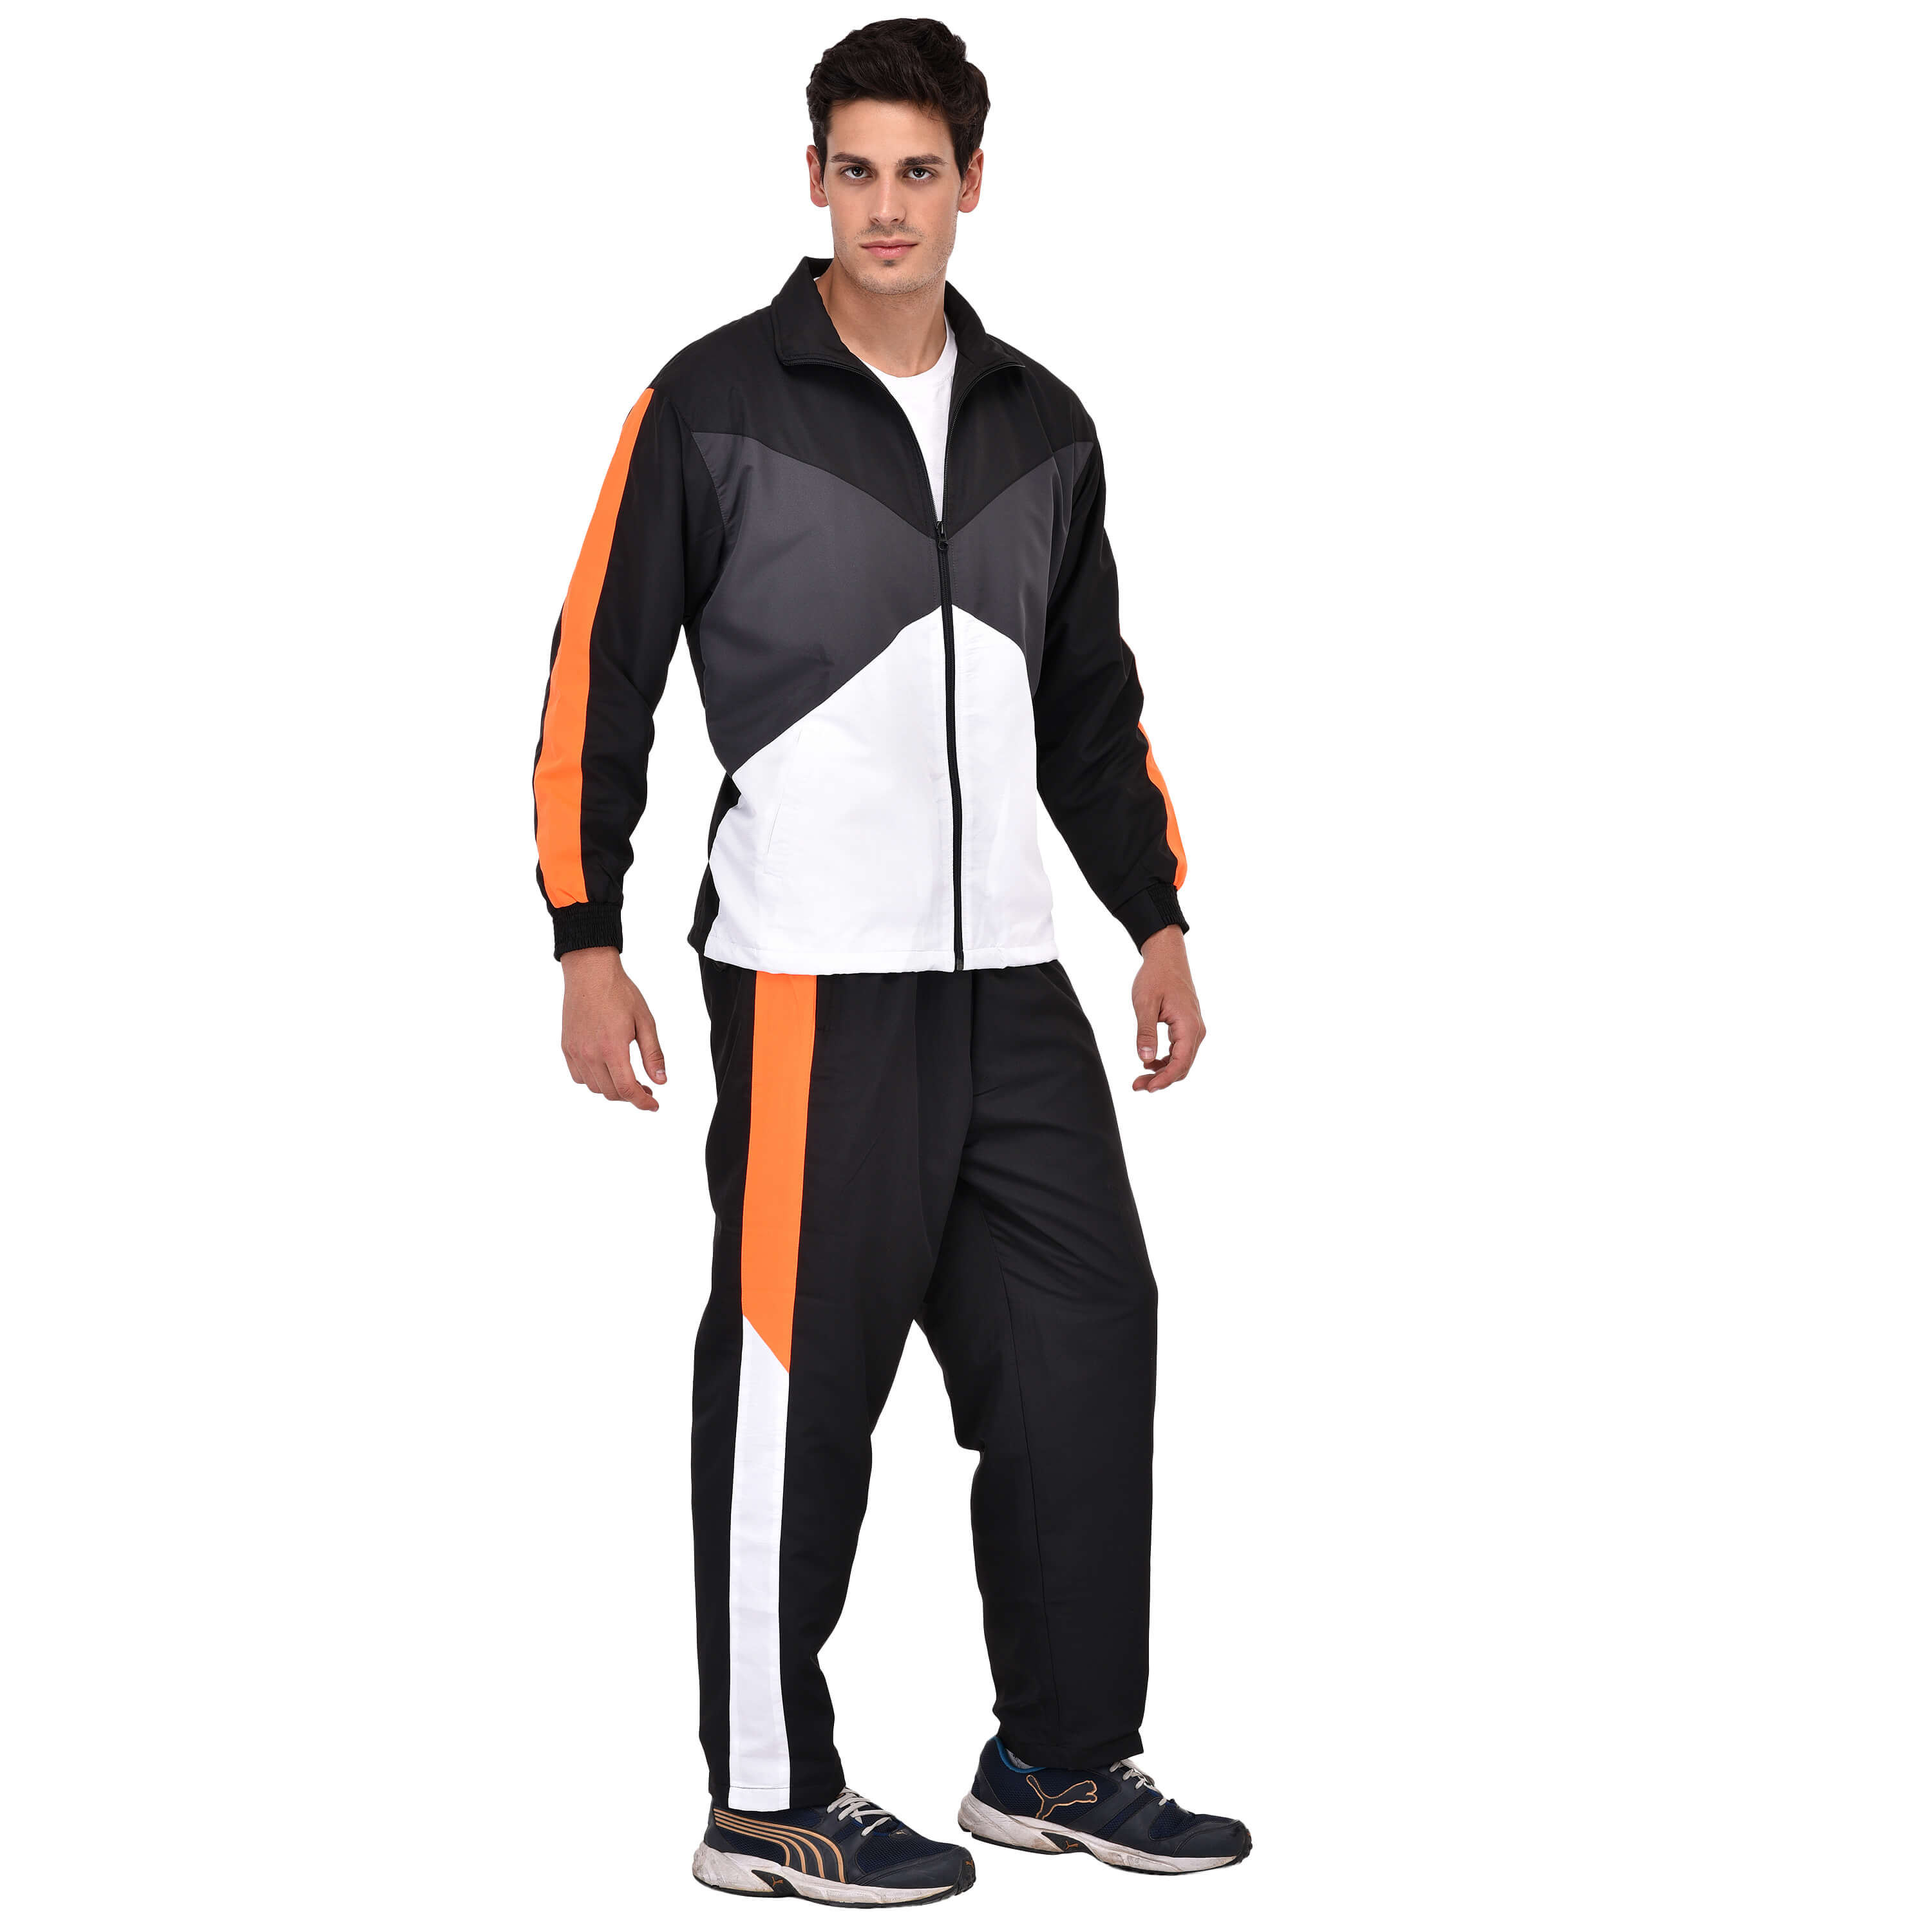 White Tracksuit Manufacturers, Wholesale Suppliers